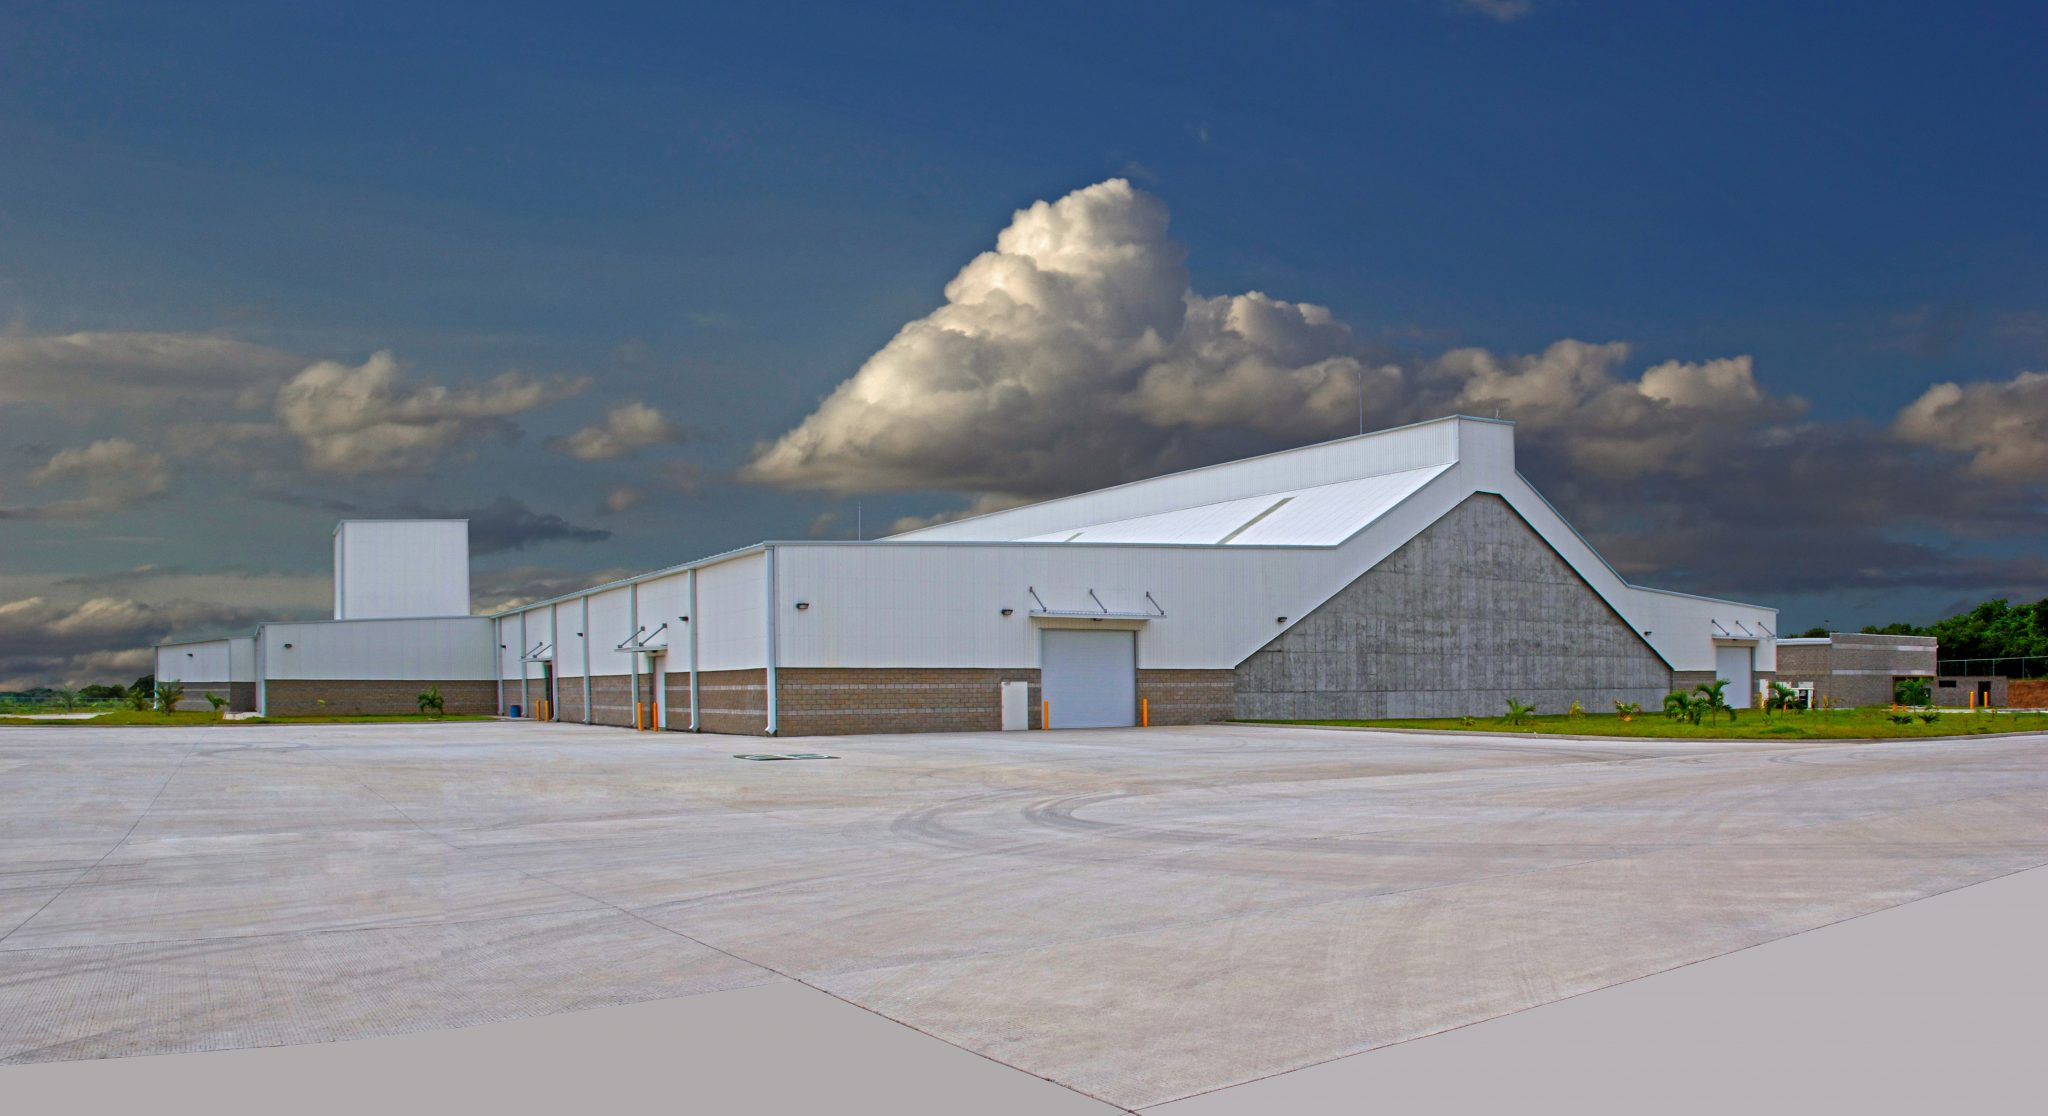 Omagro's mixed-batch facility and warehouse in Veracruz.